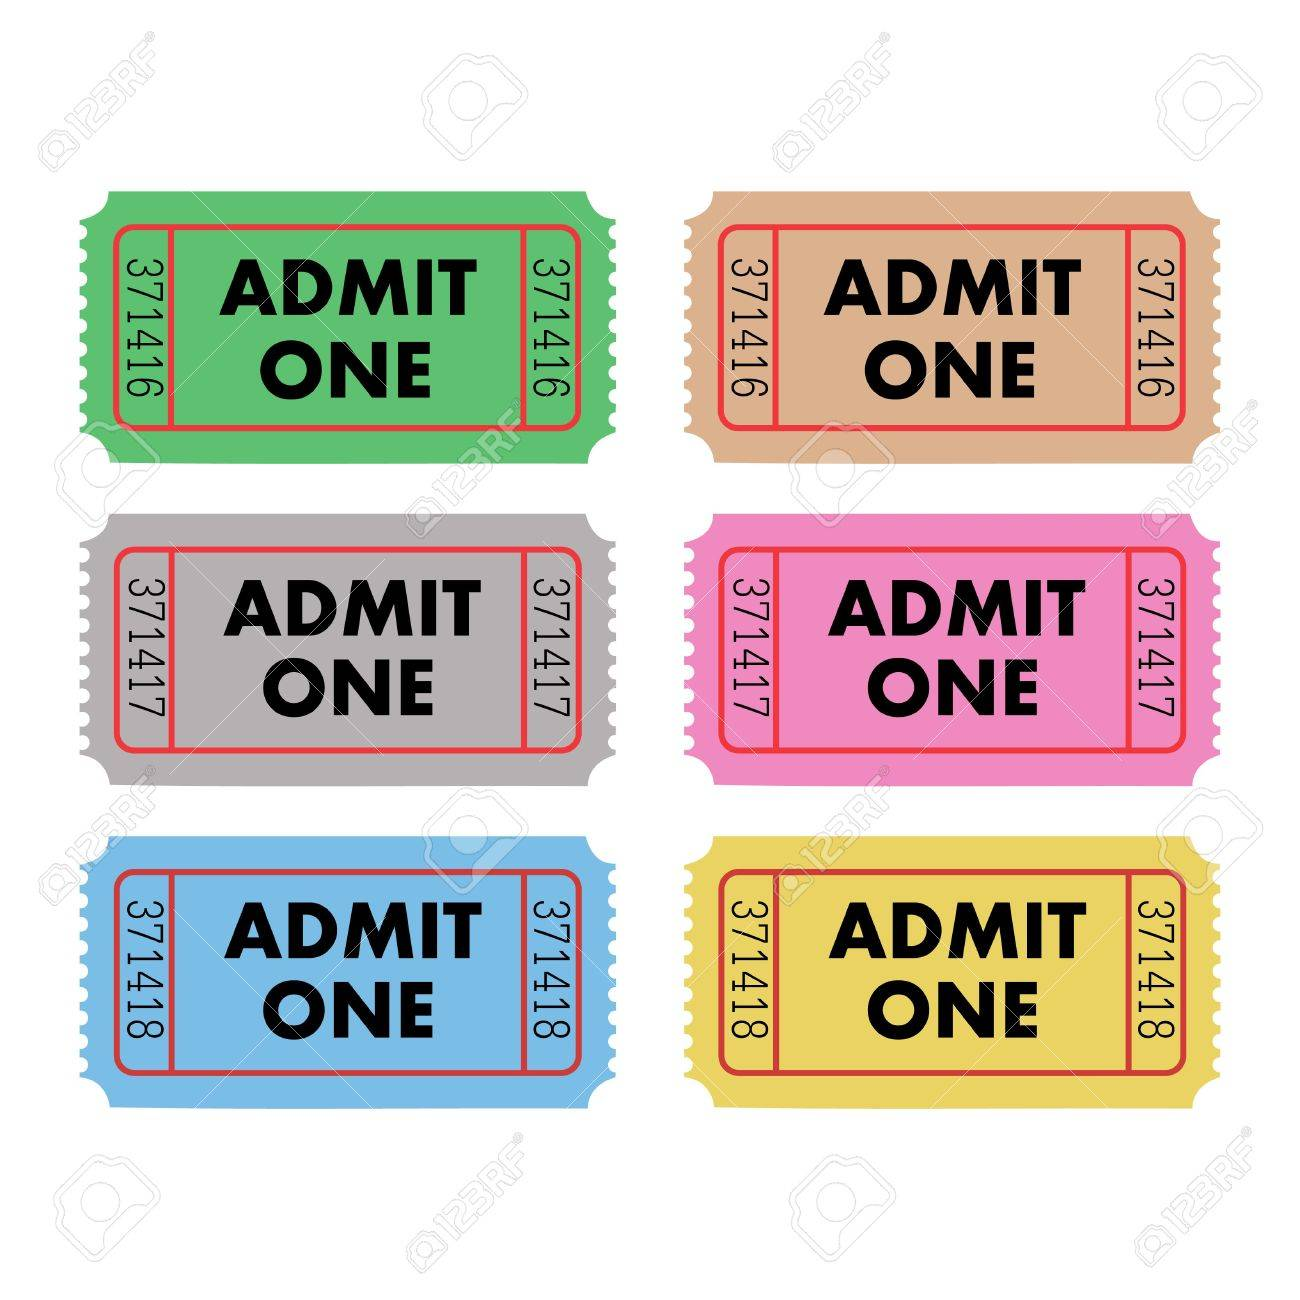 ticket admit one template – Ticket Admit One Template